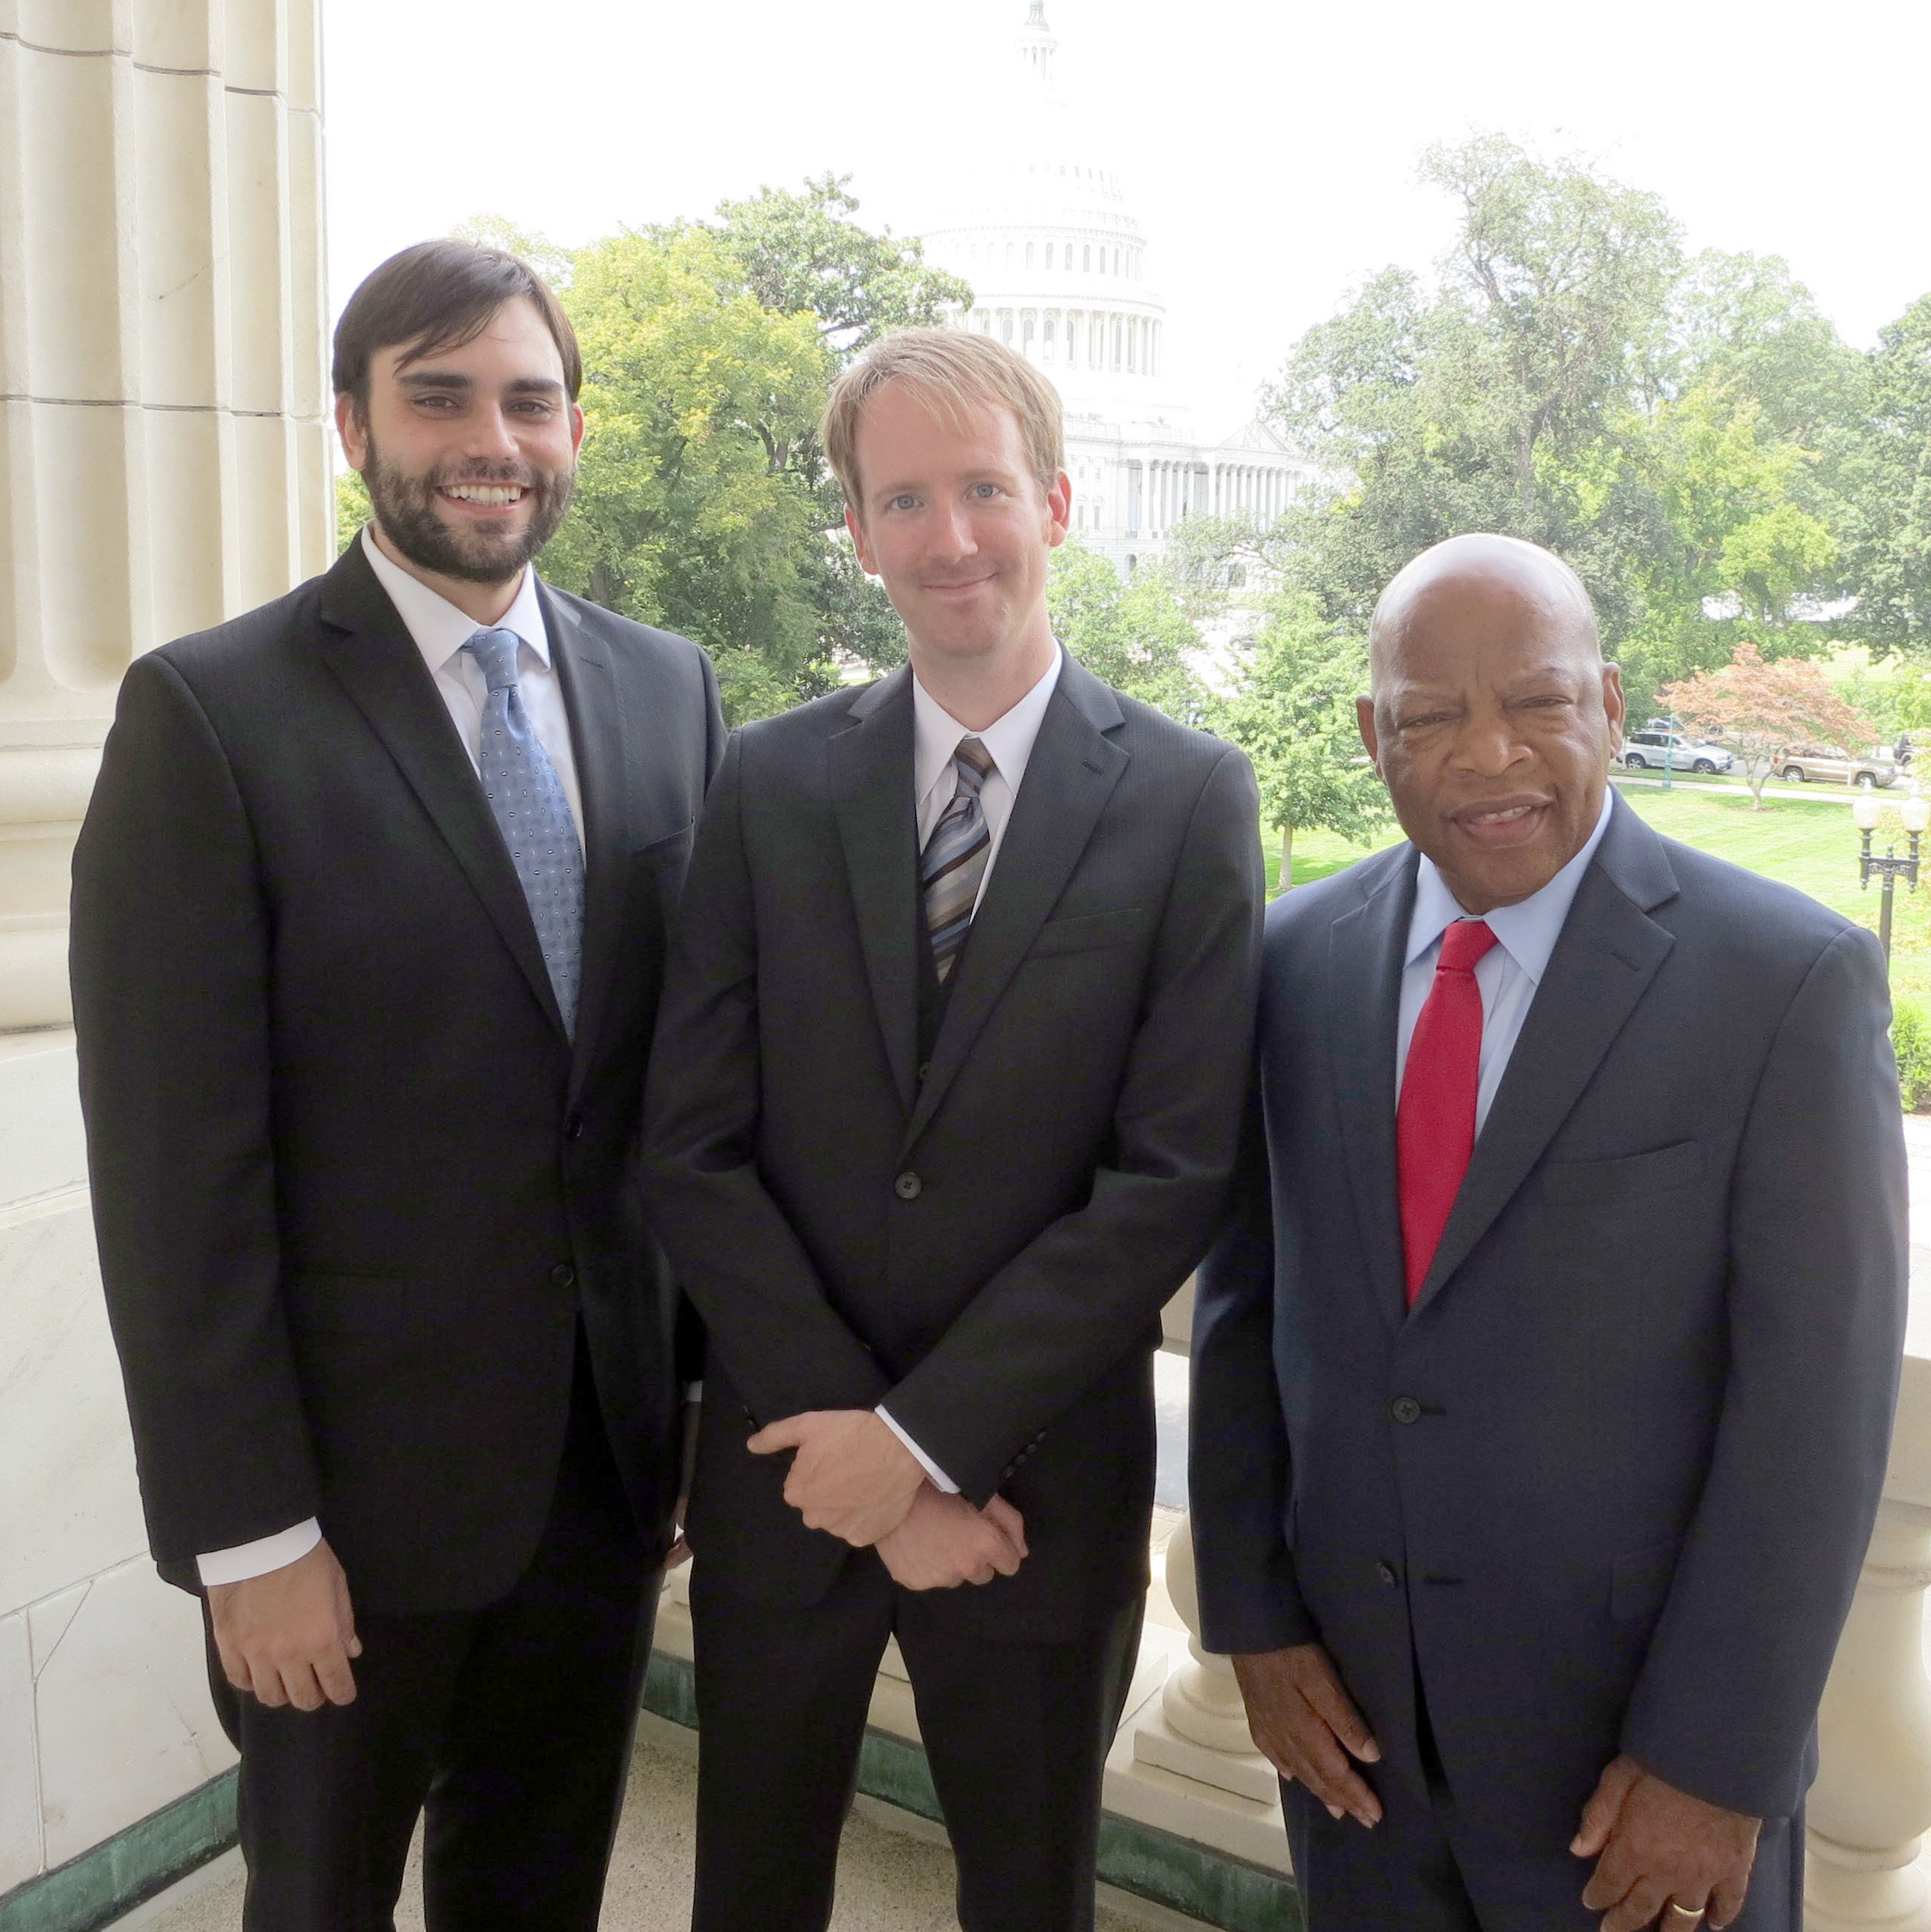 John Lewis (right) is a civil rights leader, currently a member of the U.S. House of Representatives for Georgia. Andrew Aydin (left) serves in his office and co-authored March: Book One with Lewis. Nate Powell (center) is a graphic novelist, whose previous works include Swallow Me Whole and The Silence of Our Friends.